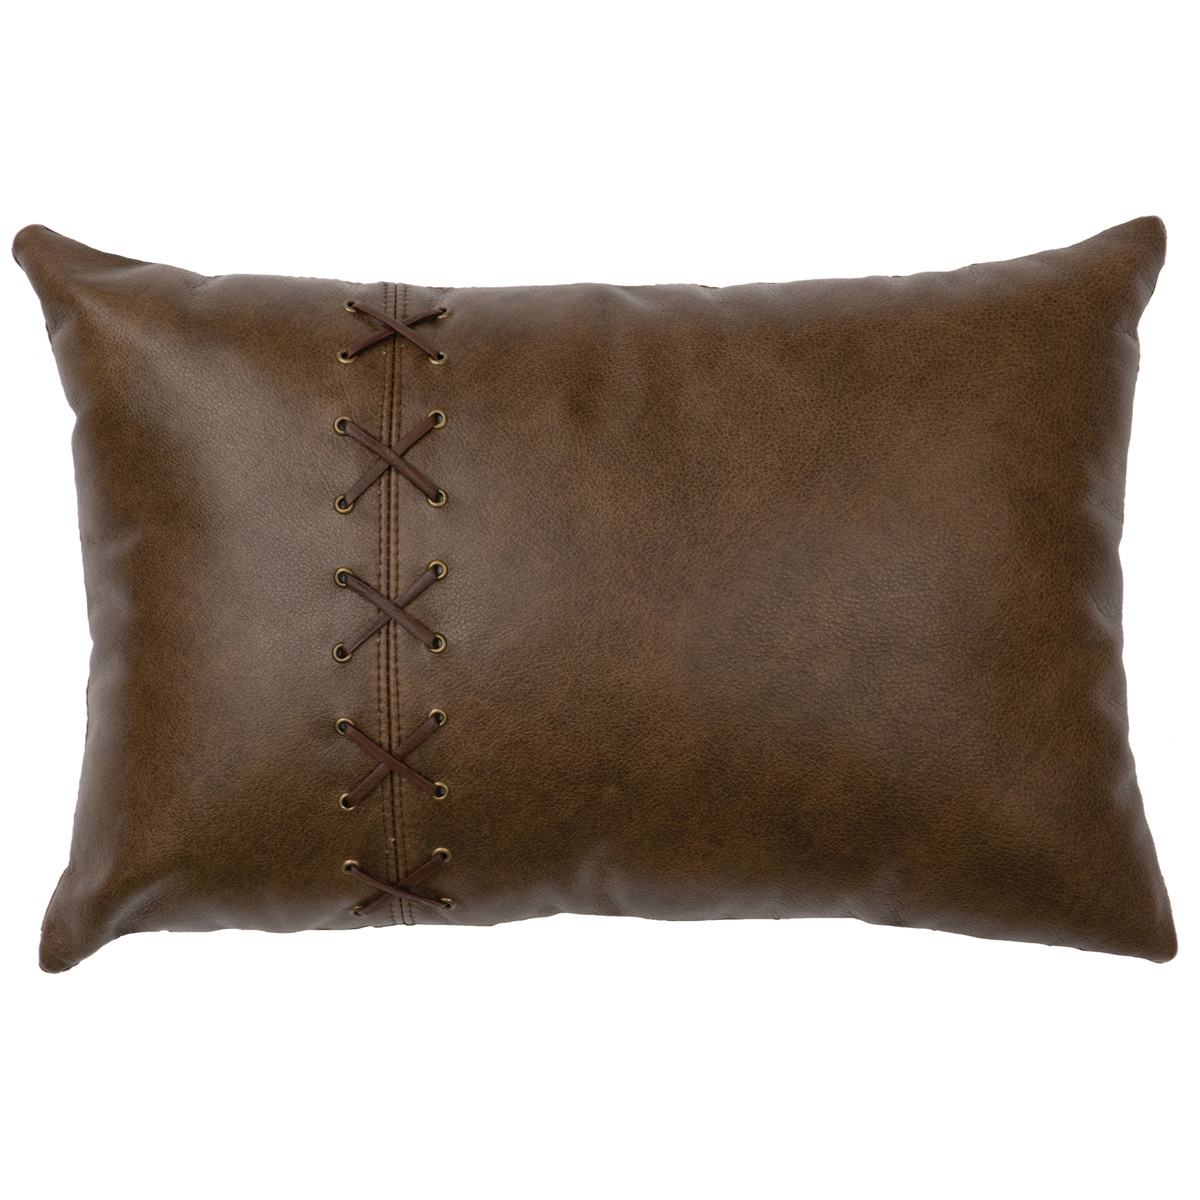 Caribou Leather and Deerskin Laced Pillow - Leather Back